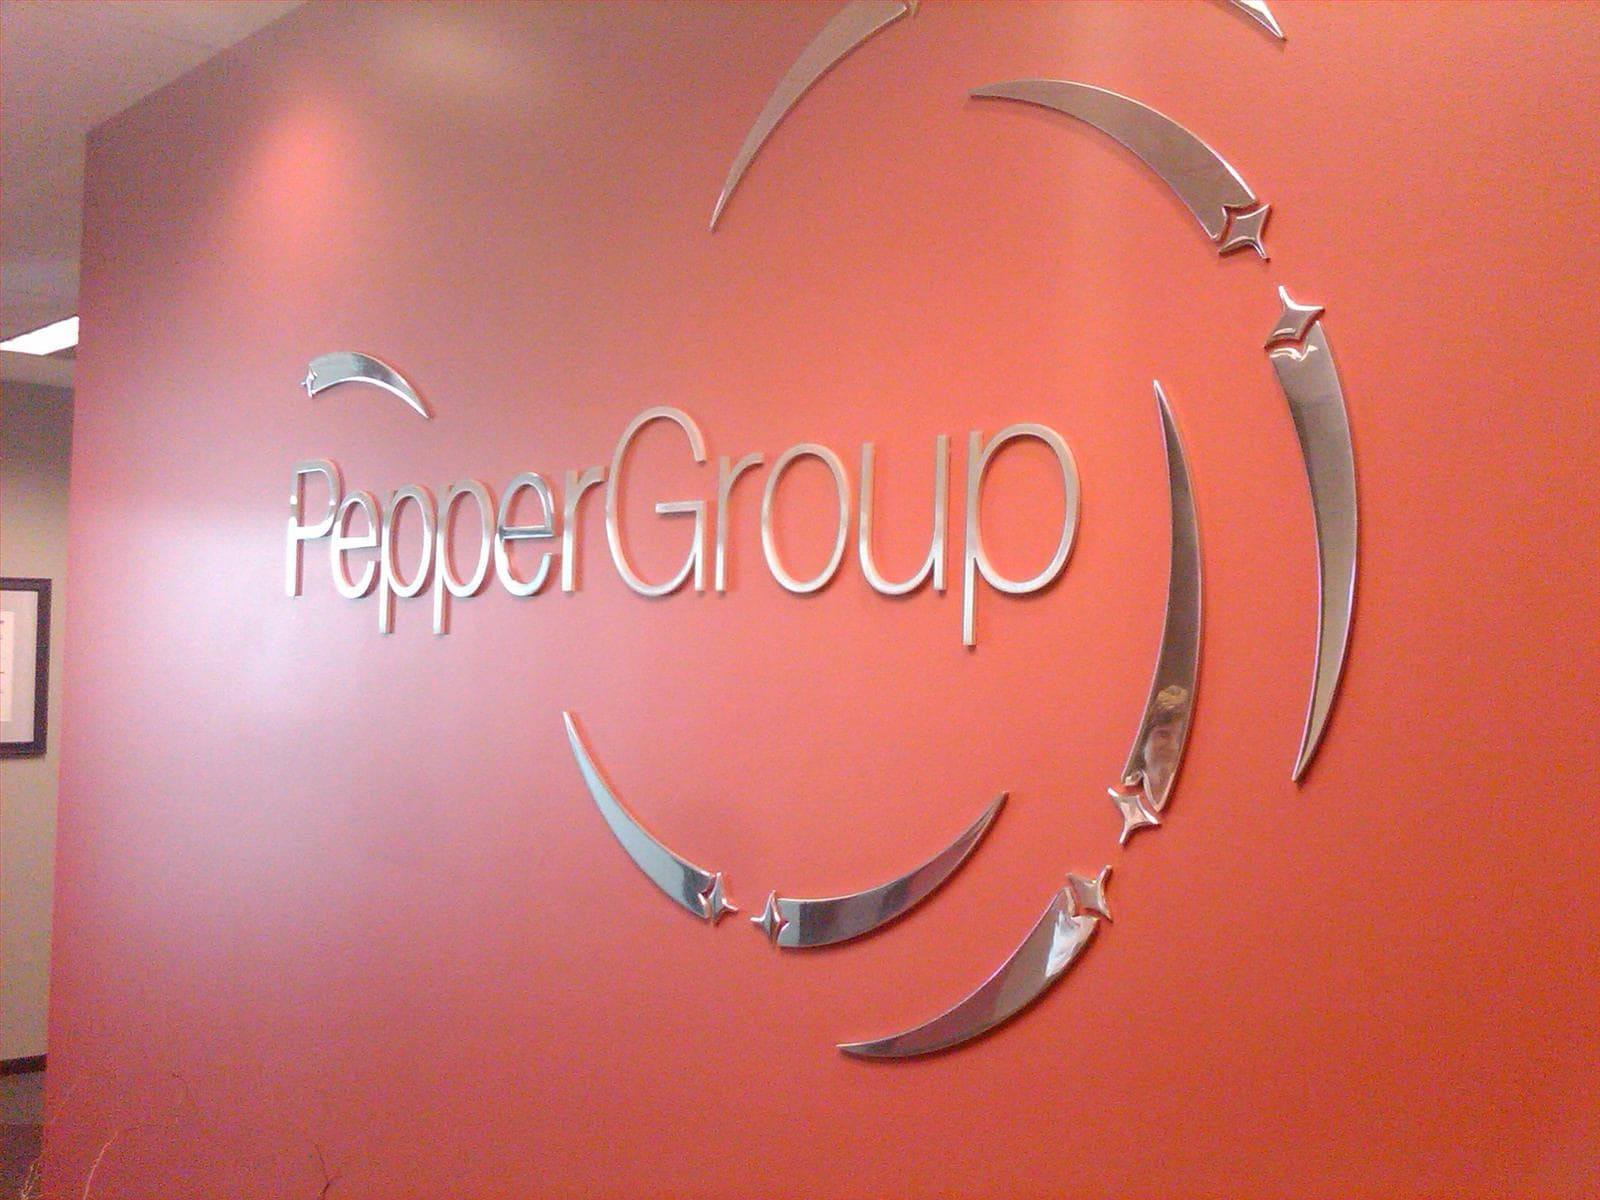 Pepper Group Wall Sign